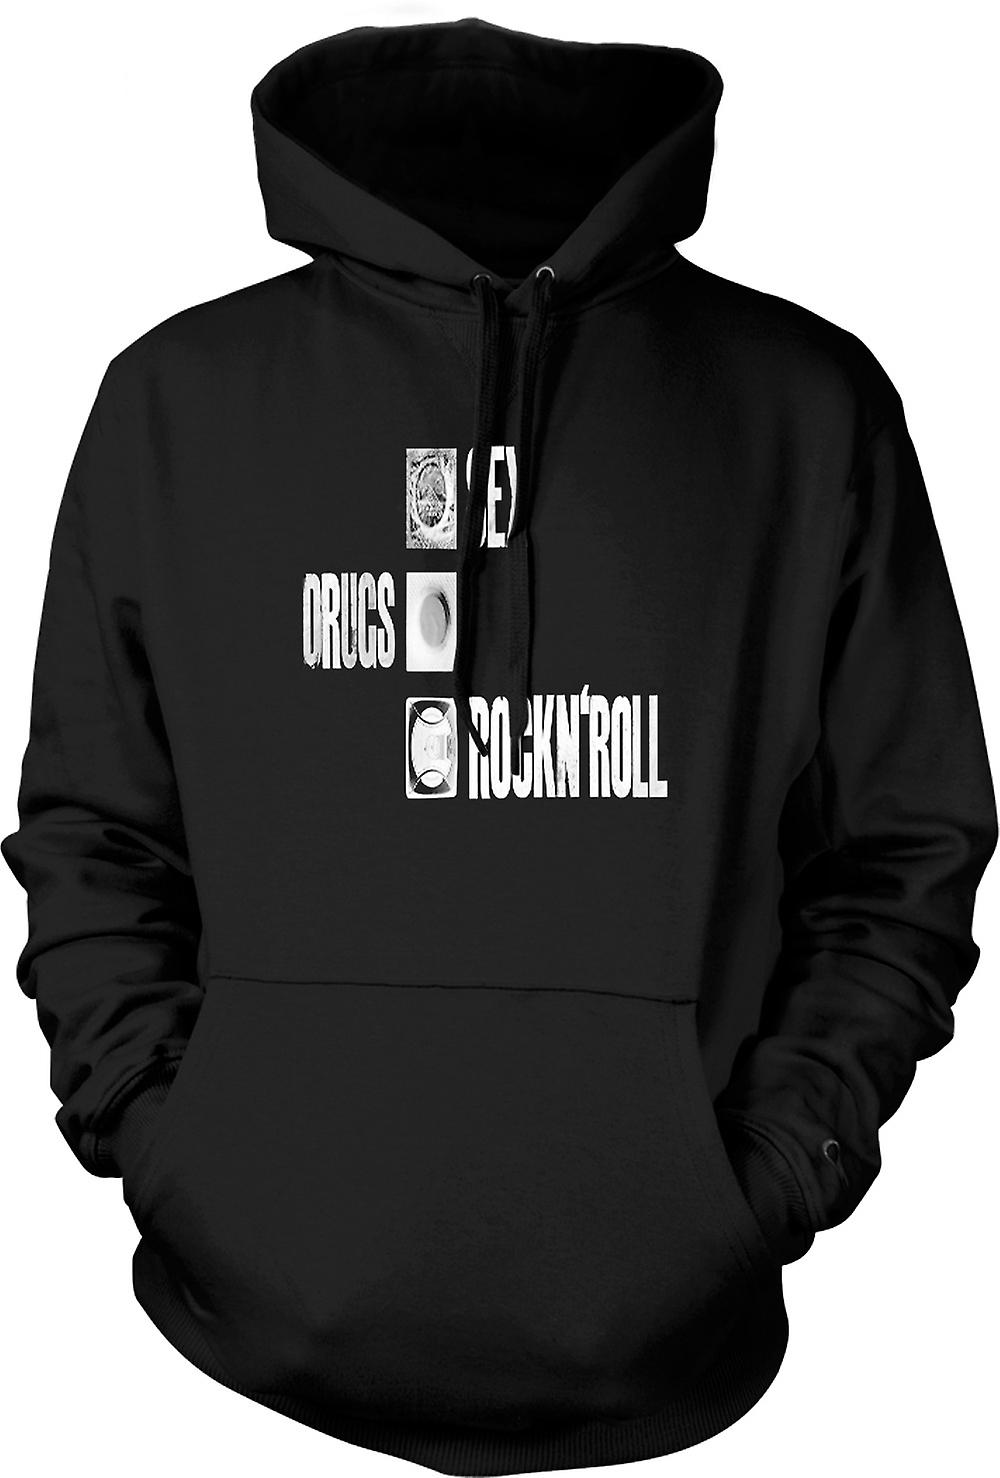 Mens Hoodie - Sex Drugs Rock n Roll - Condom